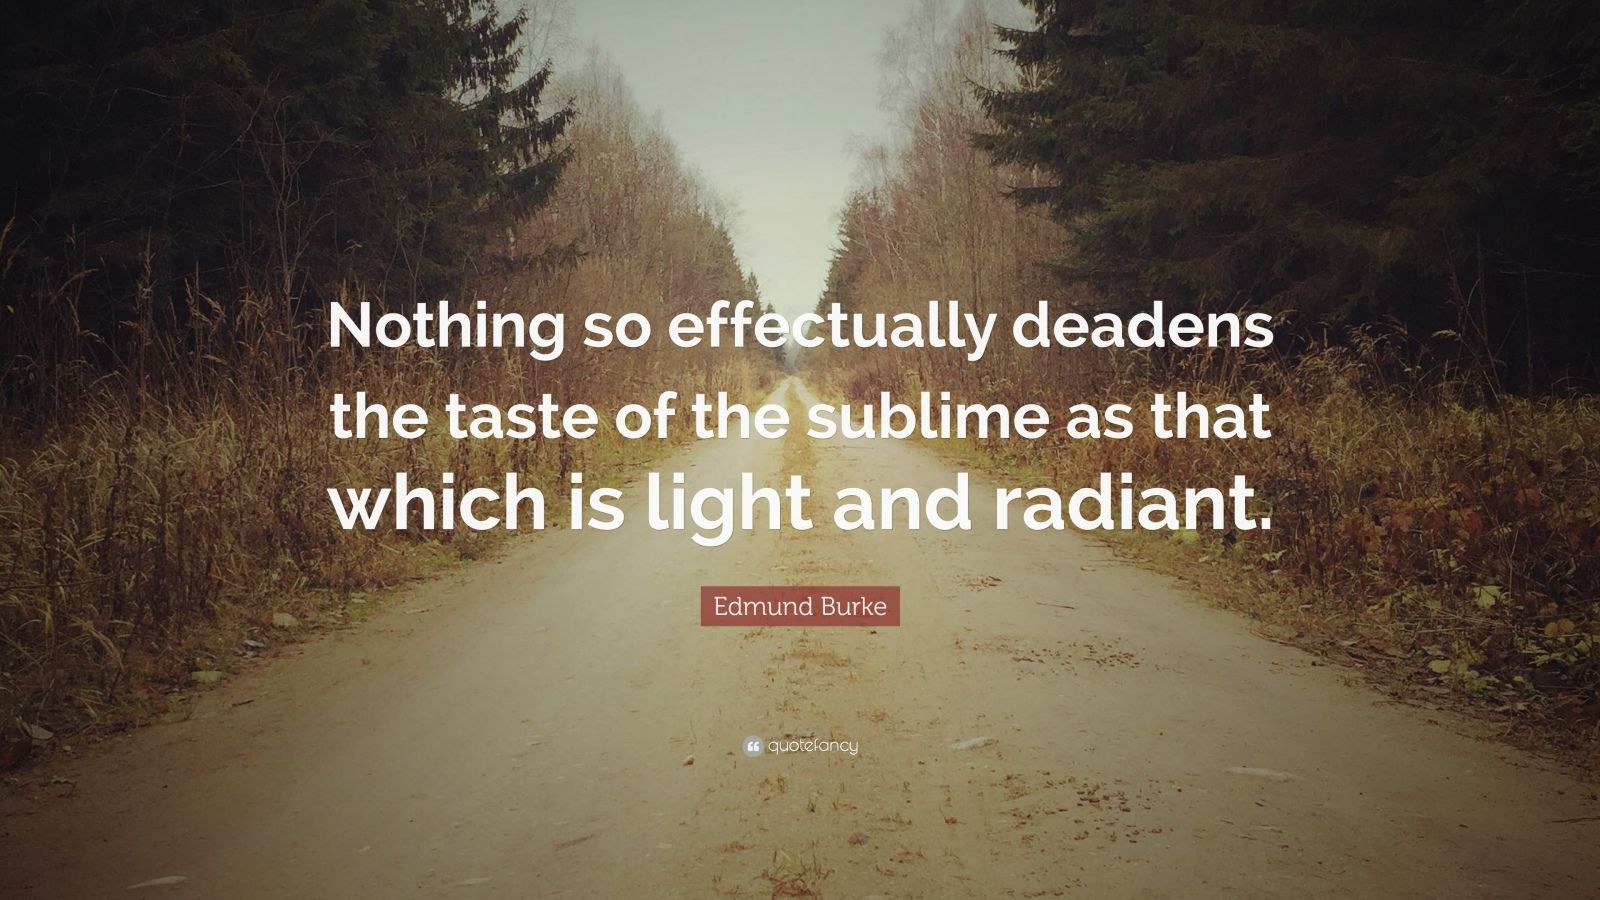 """Edmund Burke Quote: """"Nothing so effectually deadens the taste of the sublime as that which is light and radiant."""""""